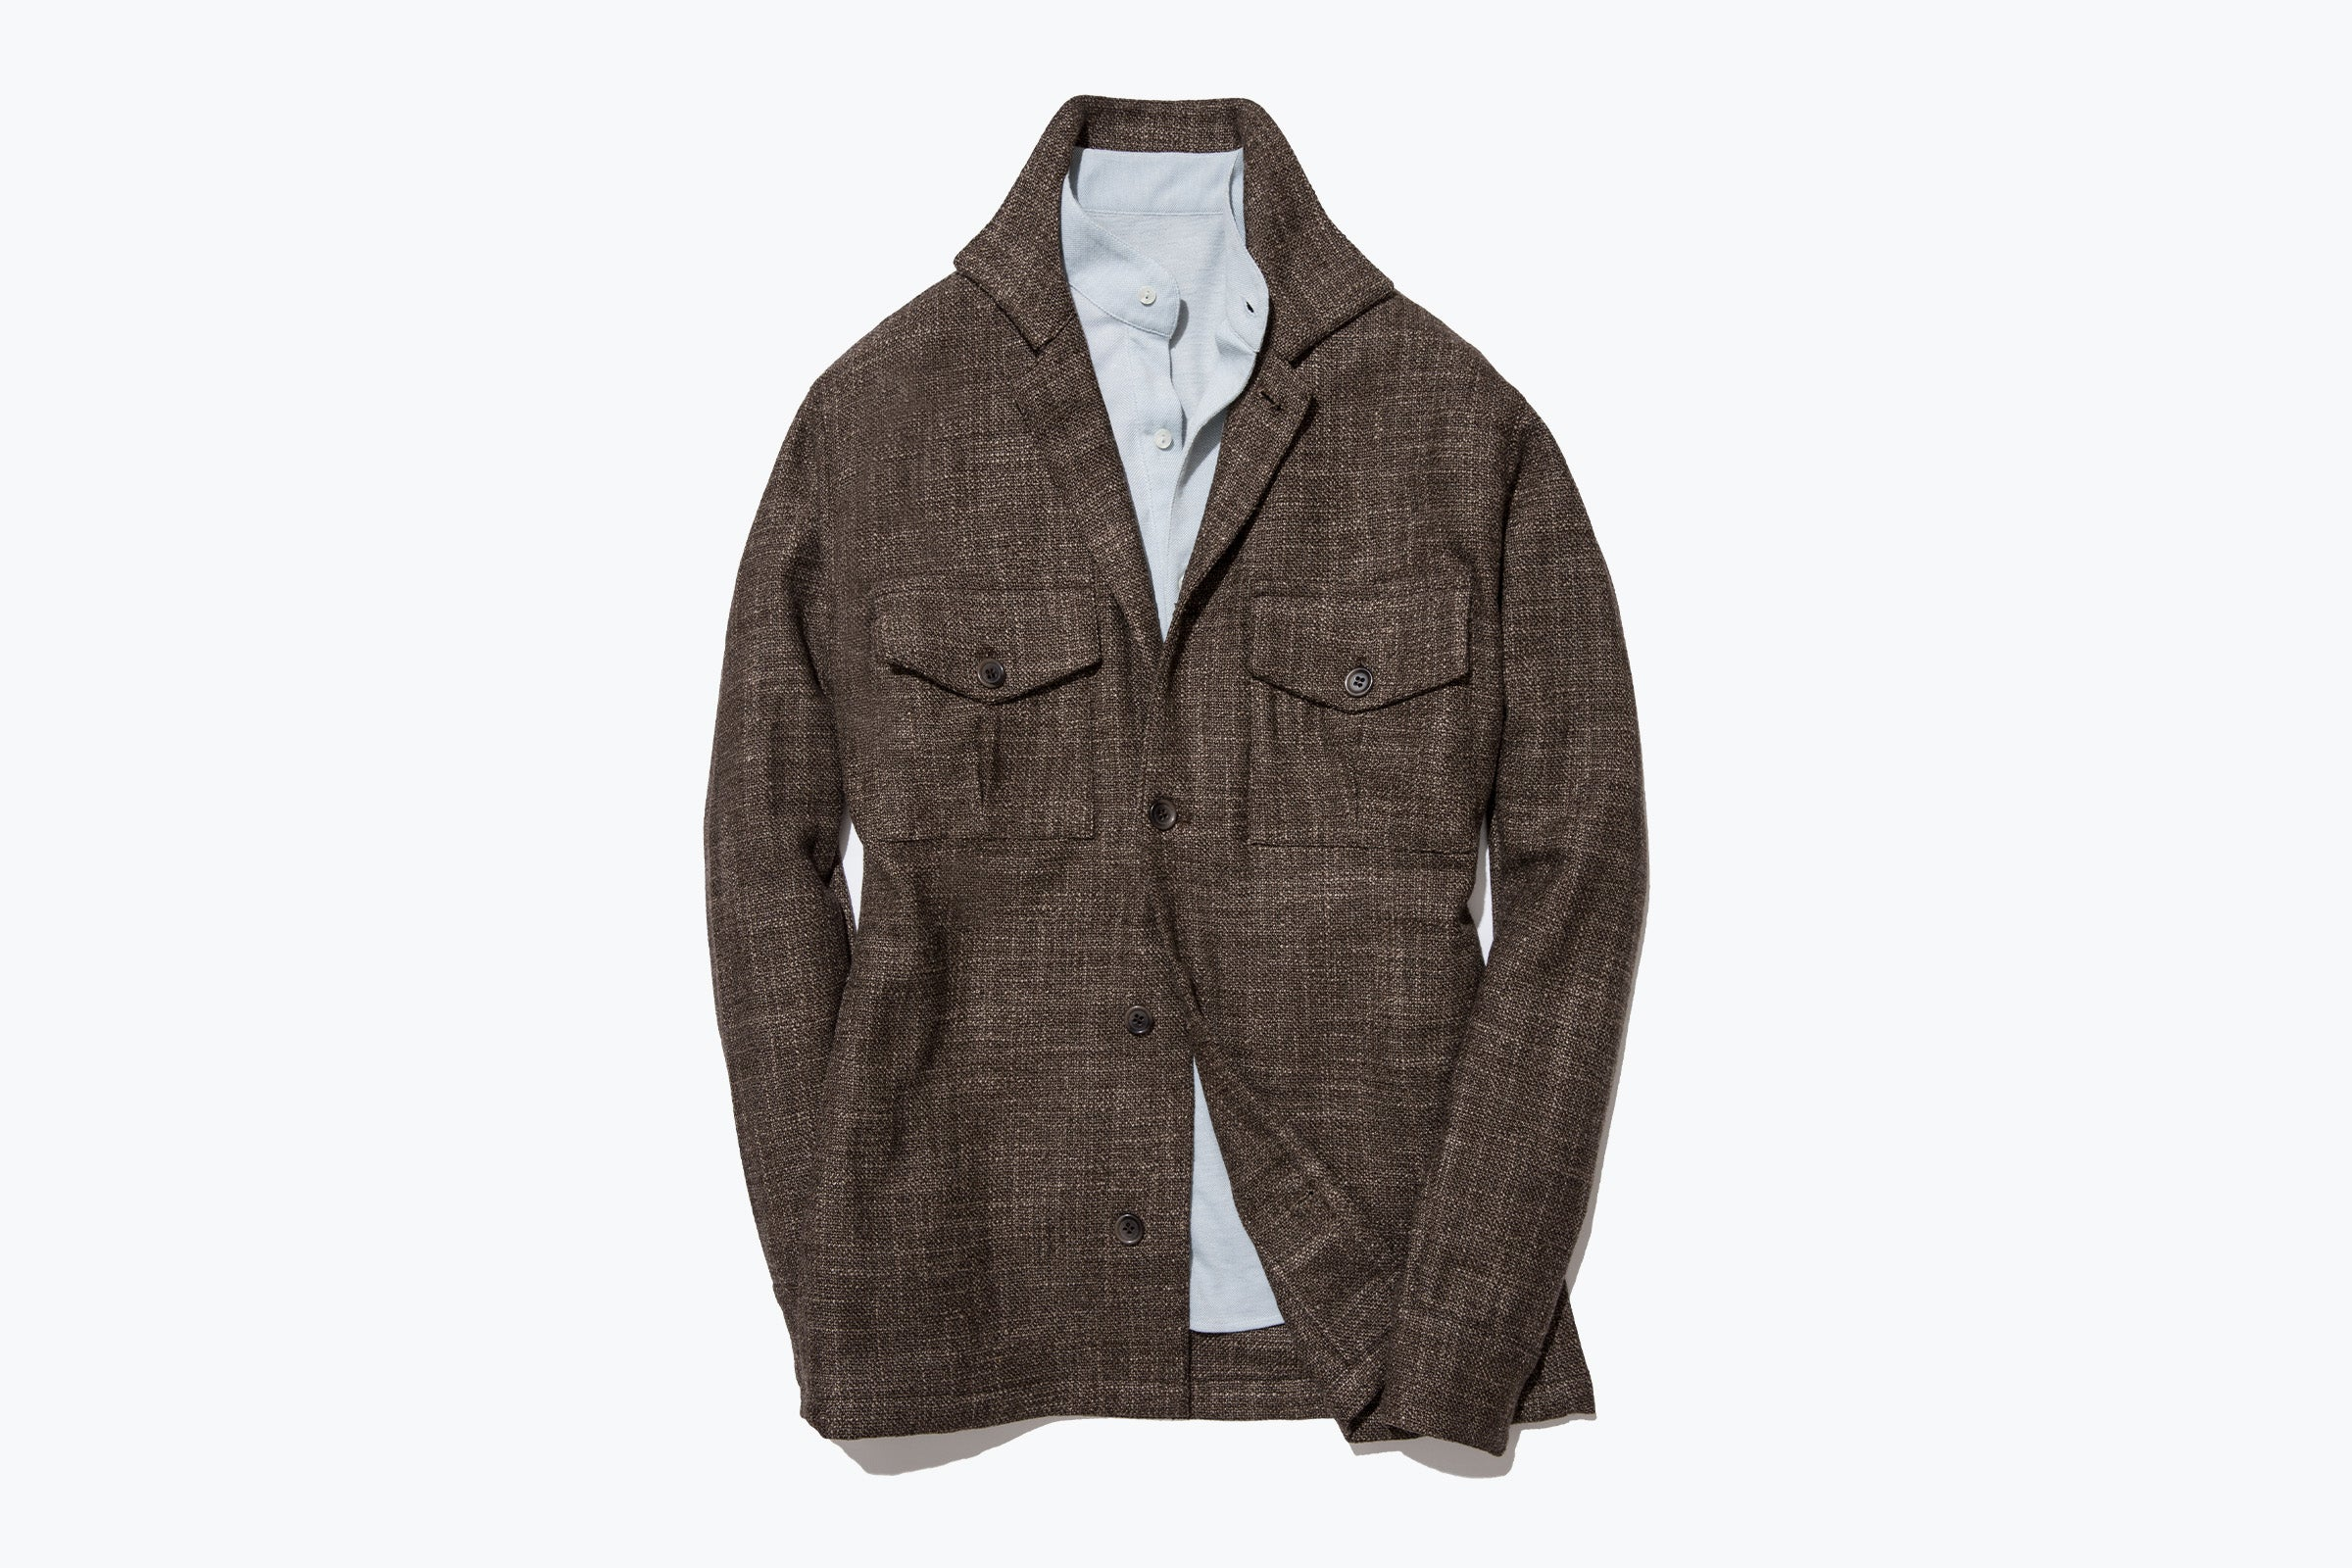 Outerwear - 006 - Shirt Jacket